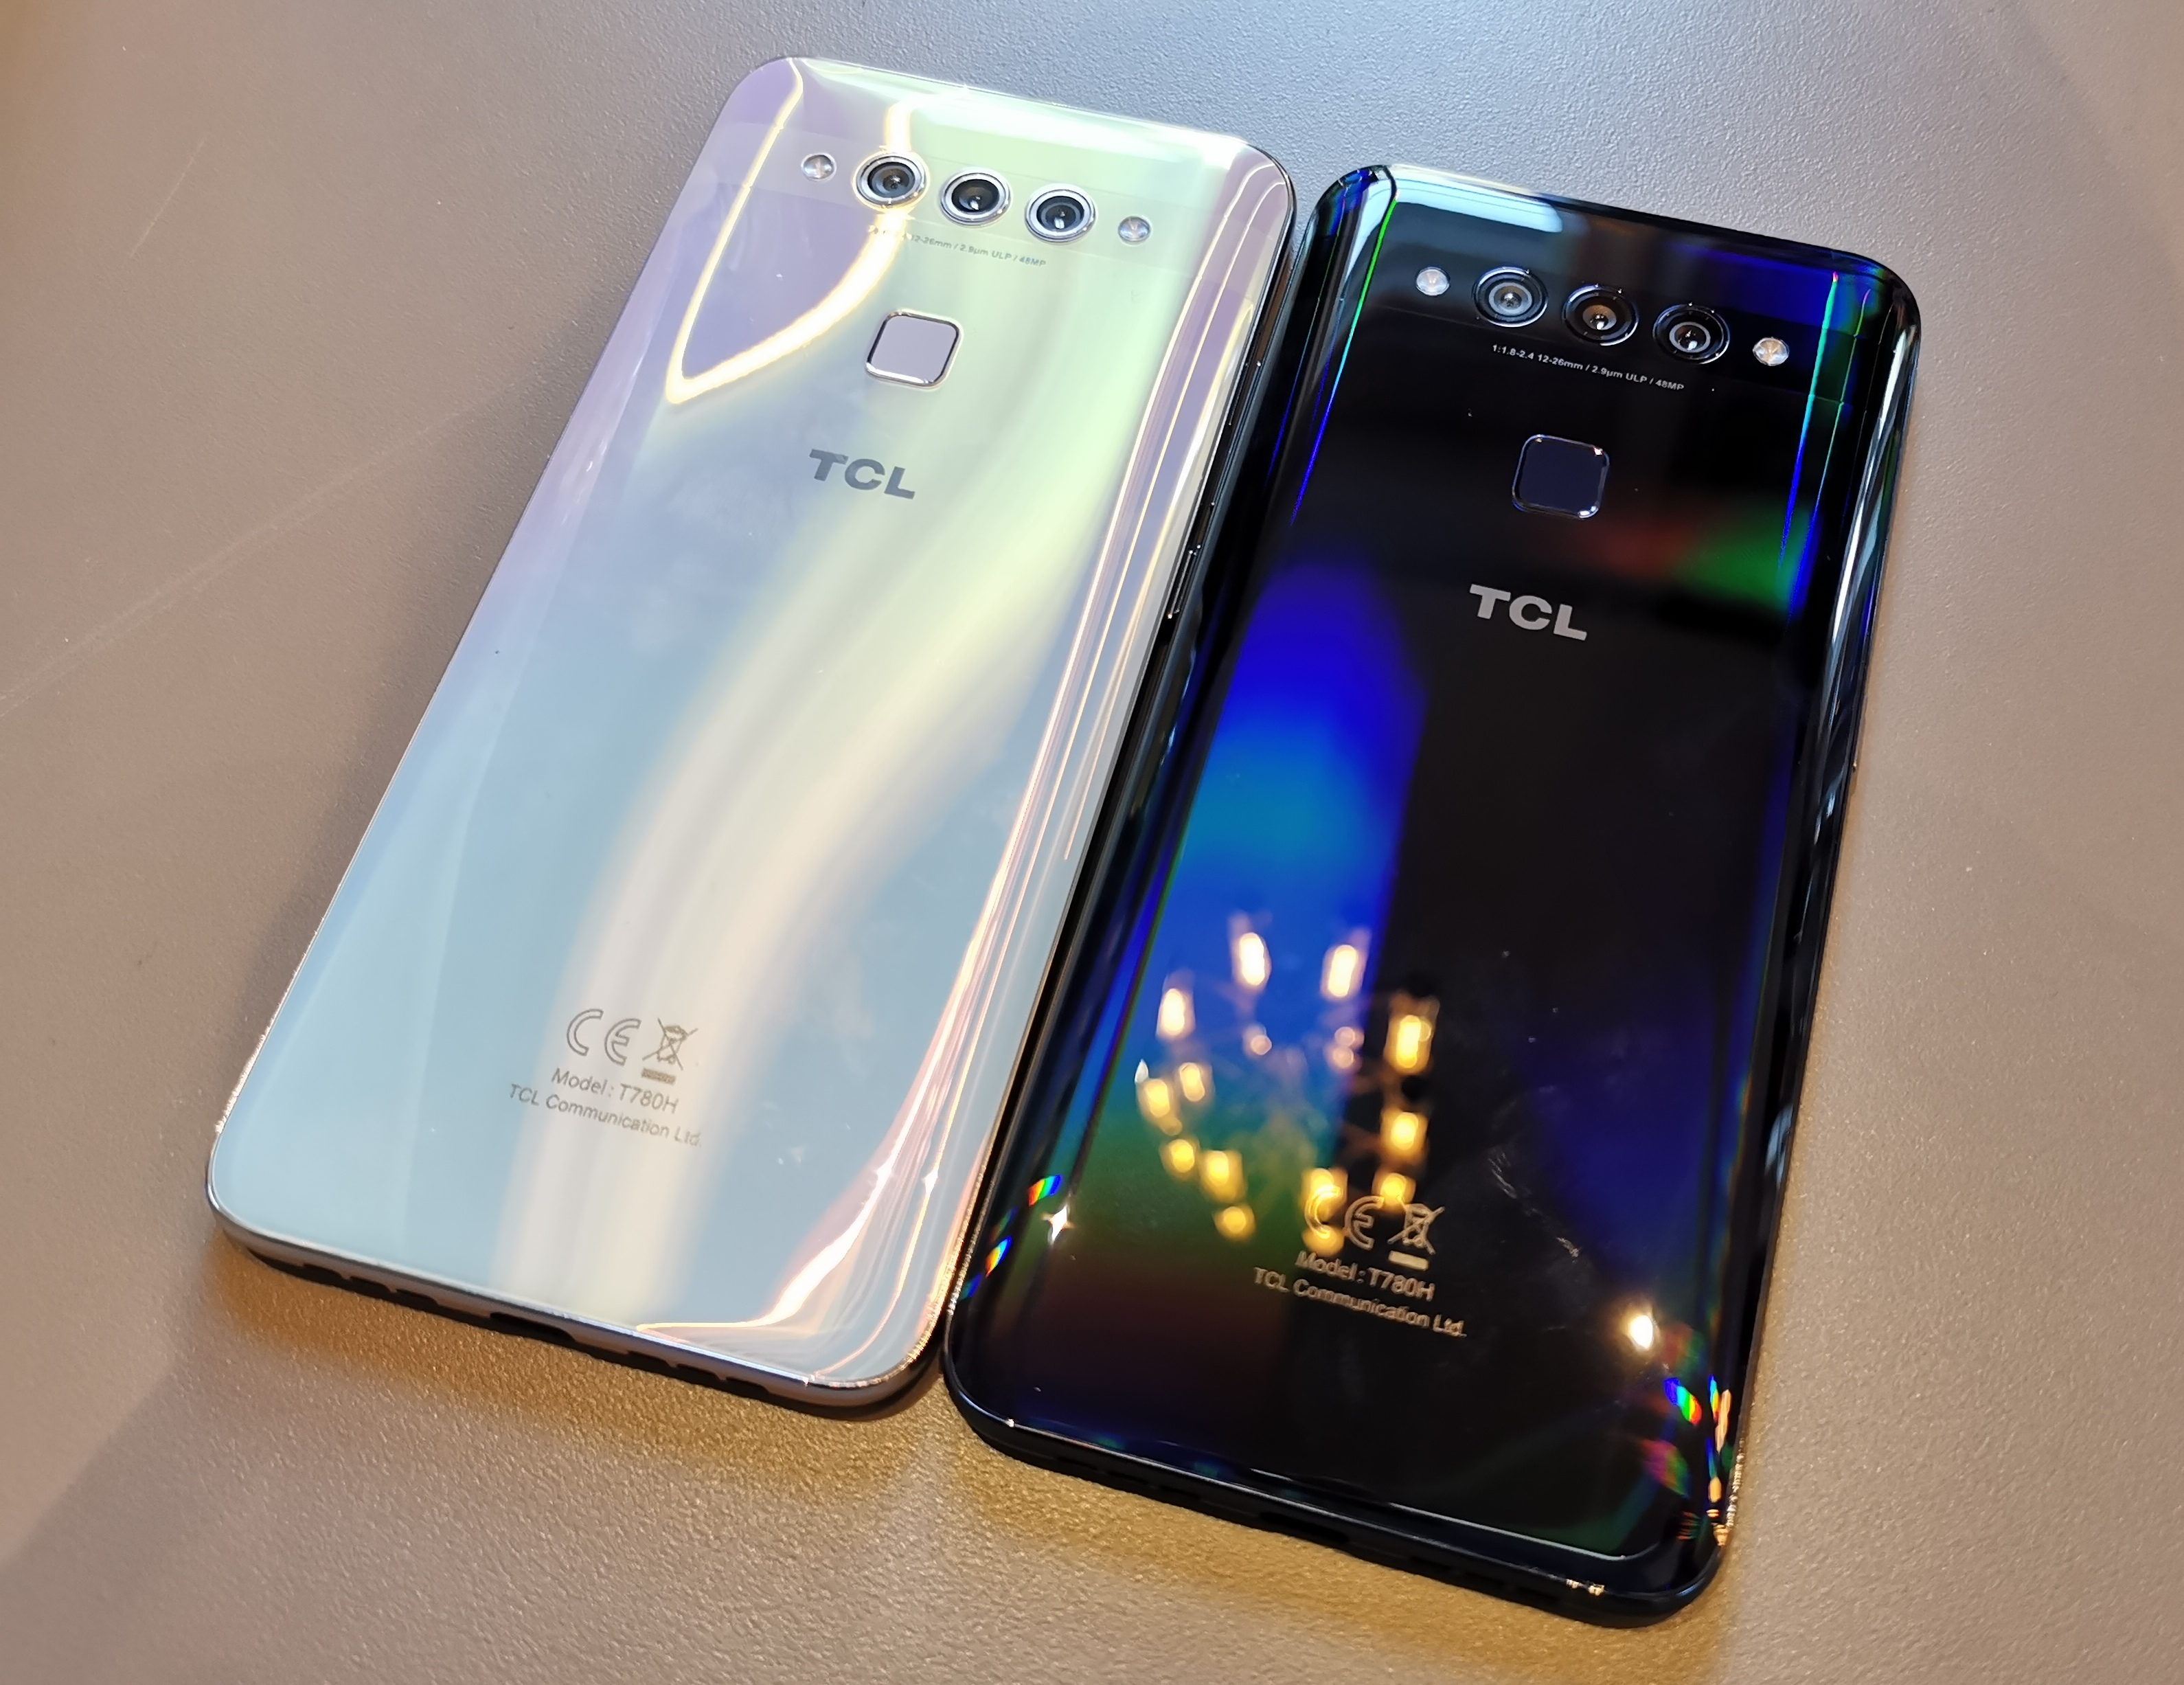 The TCL Plex Smartphone Hands-On: Dedicated Low-Light Camera